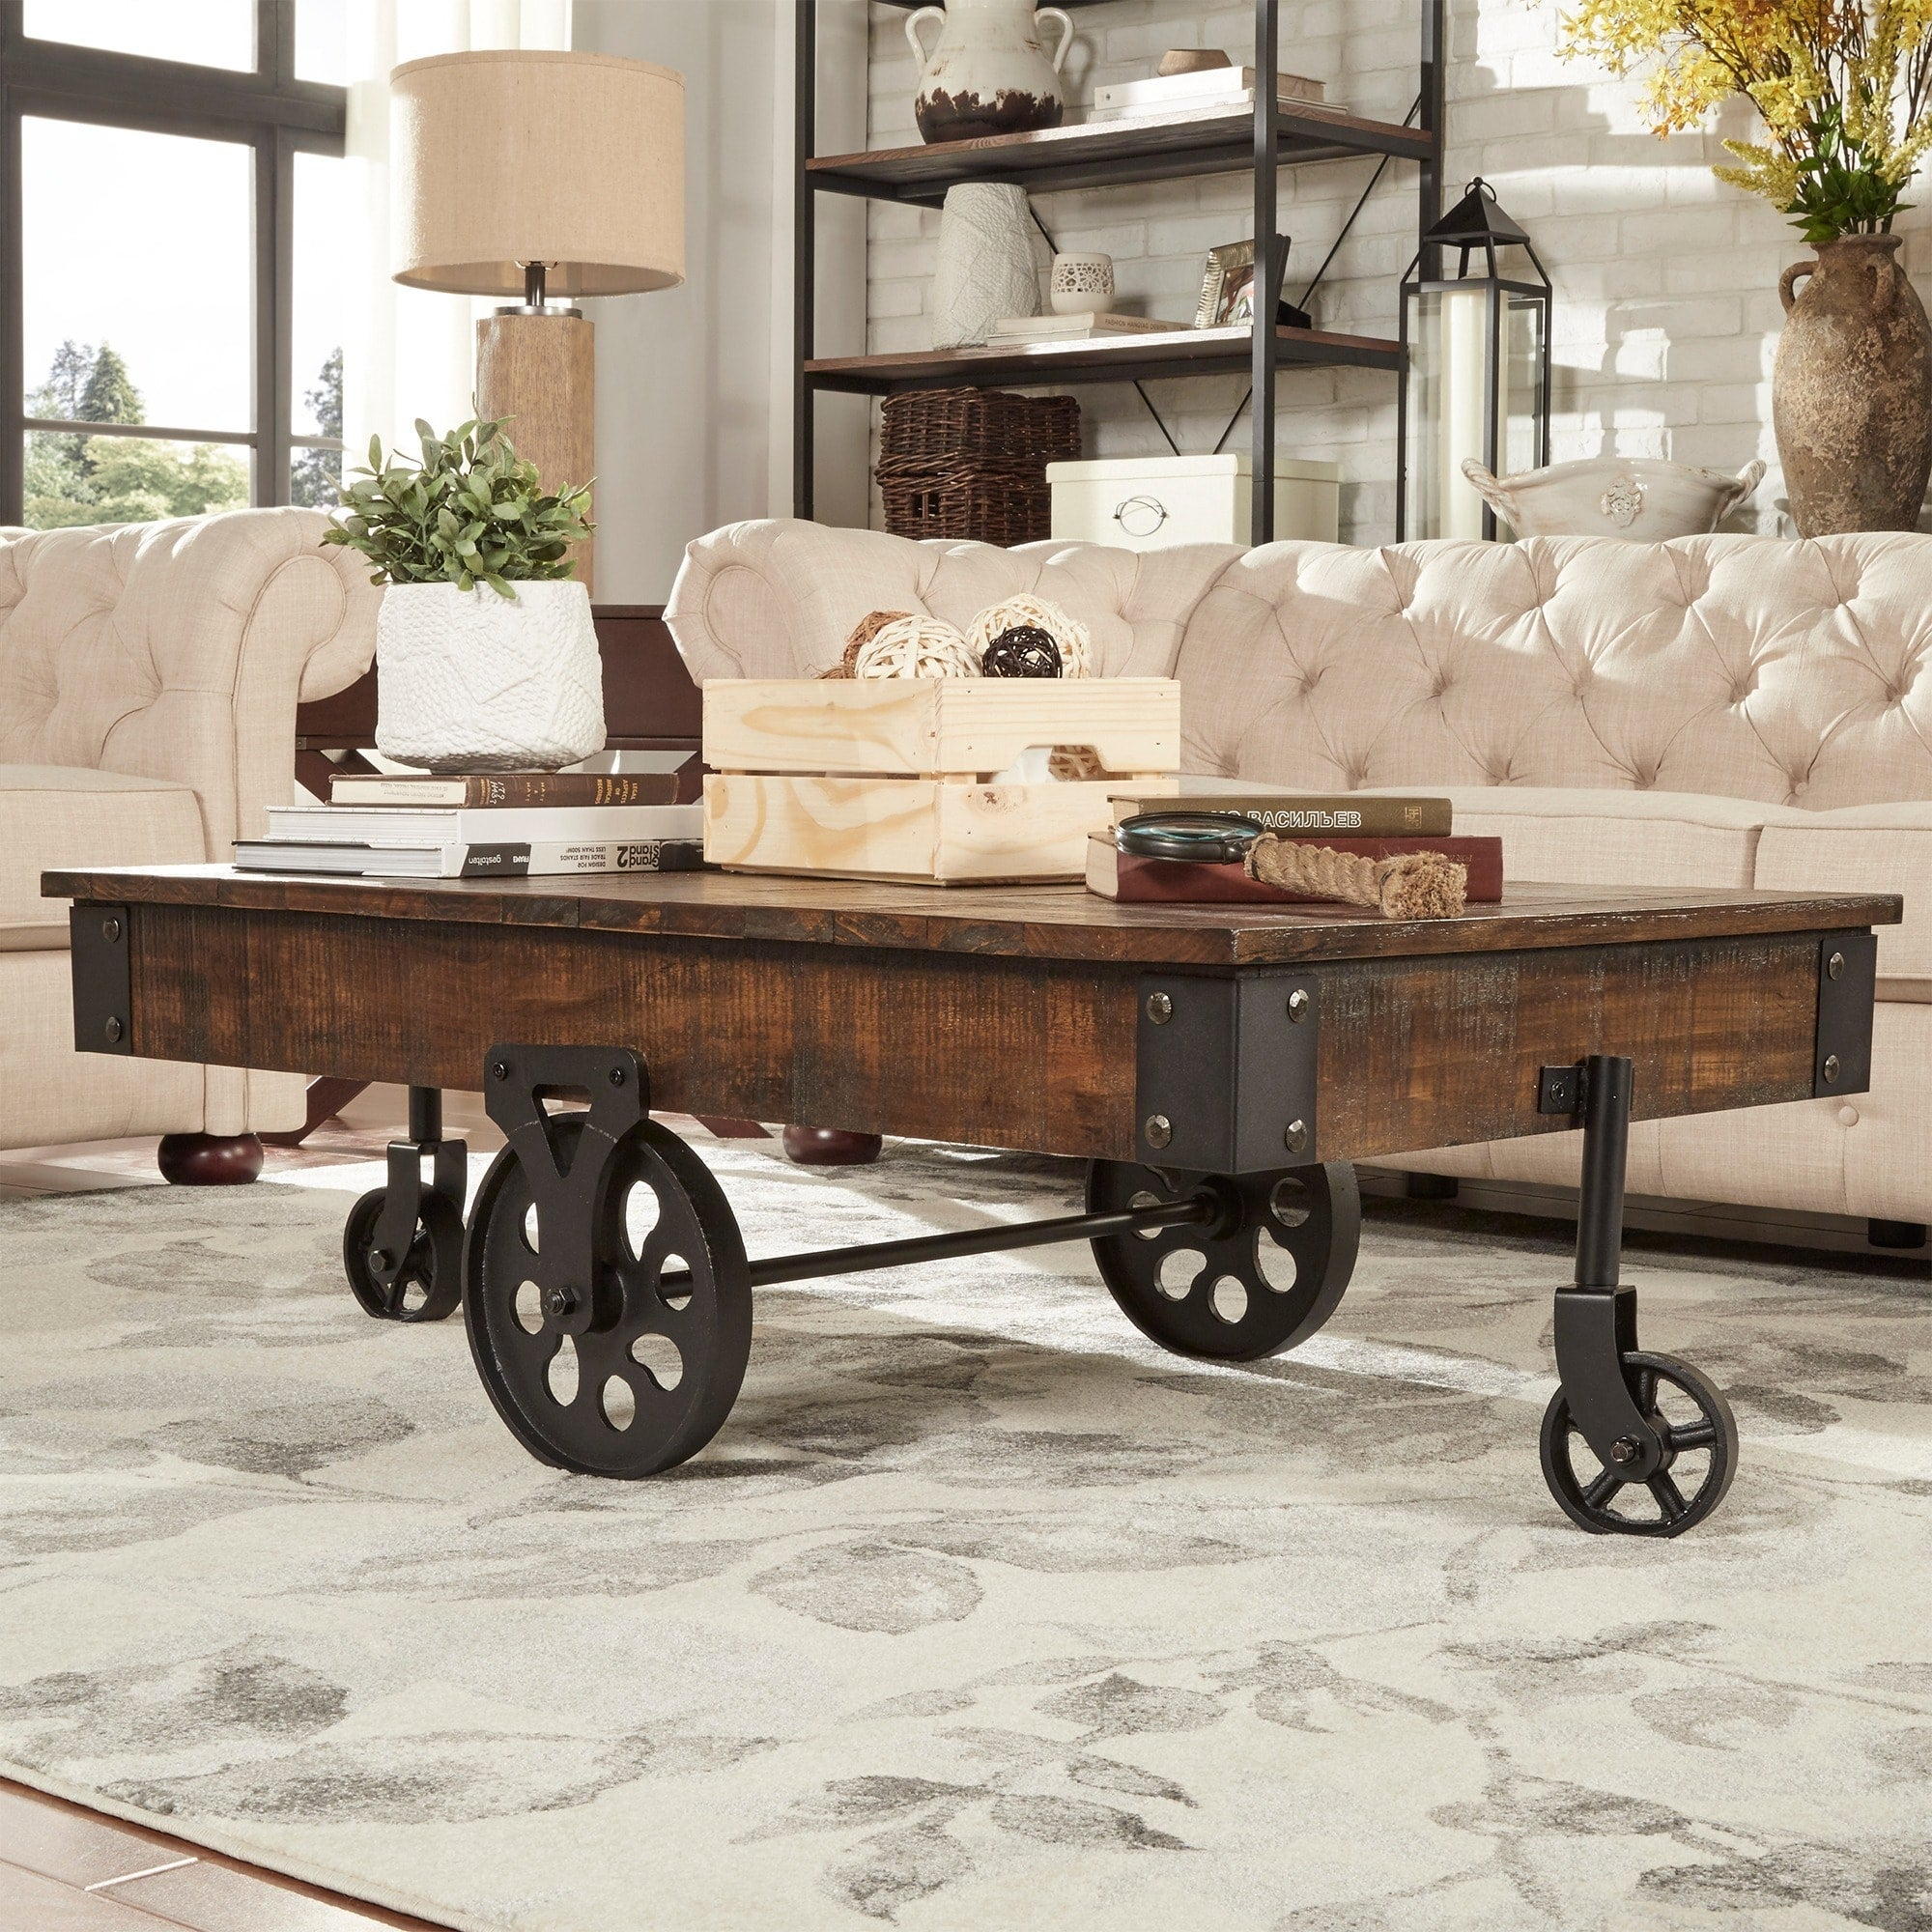 Incroyable Industrial Modern Rustic Coffee Table